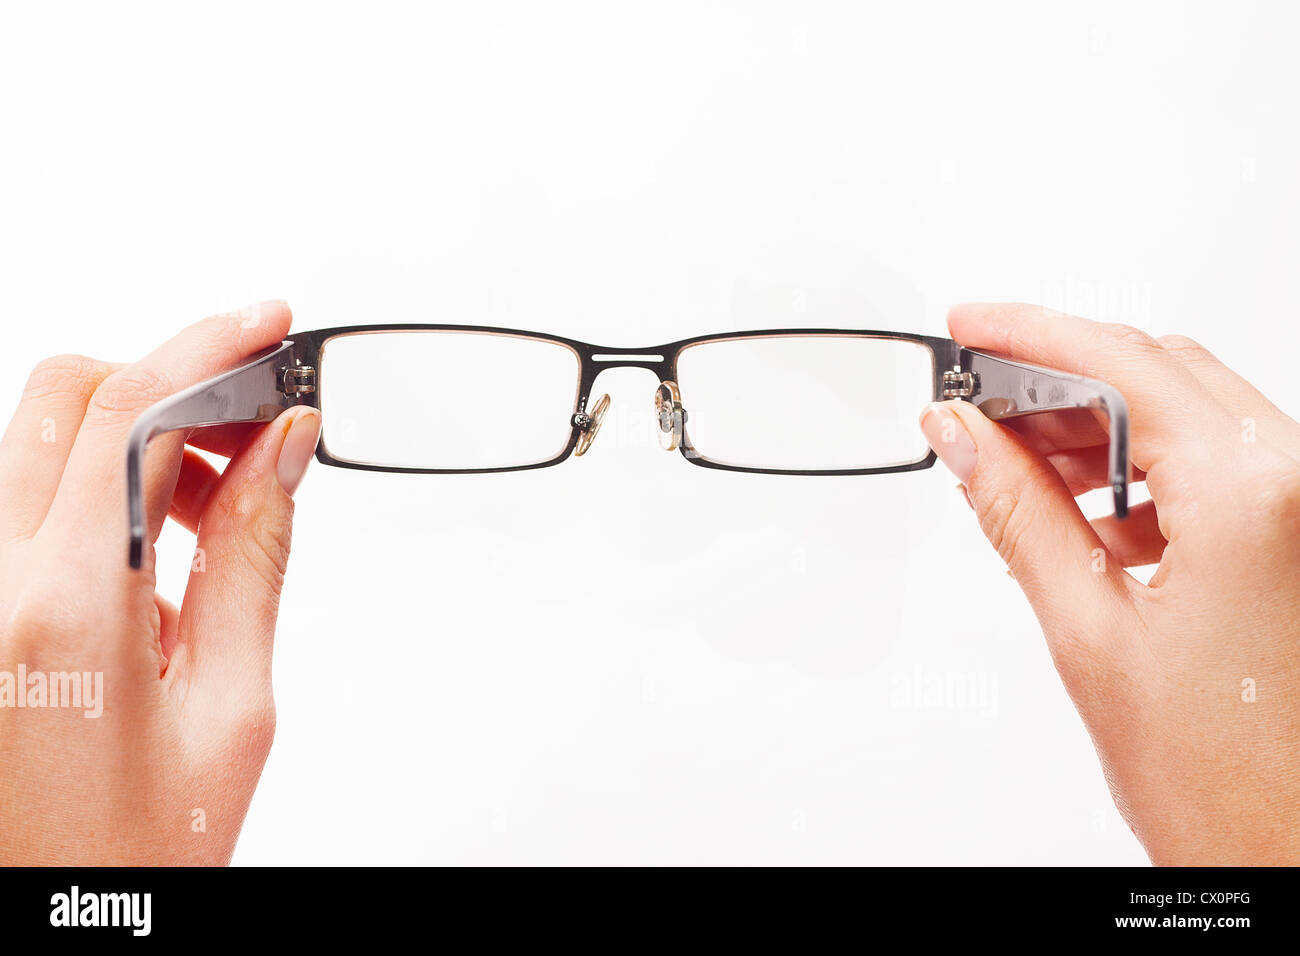 Hands holding eyeglasses sur fond blanc. Photo Stock